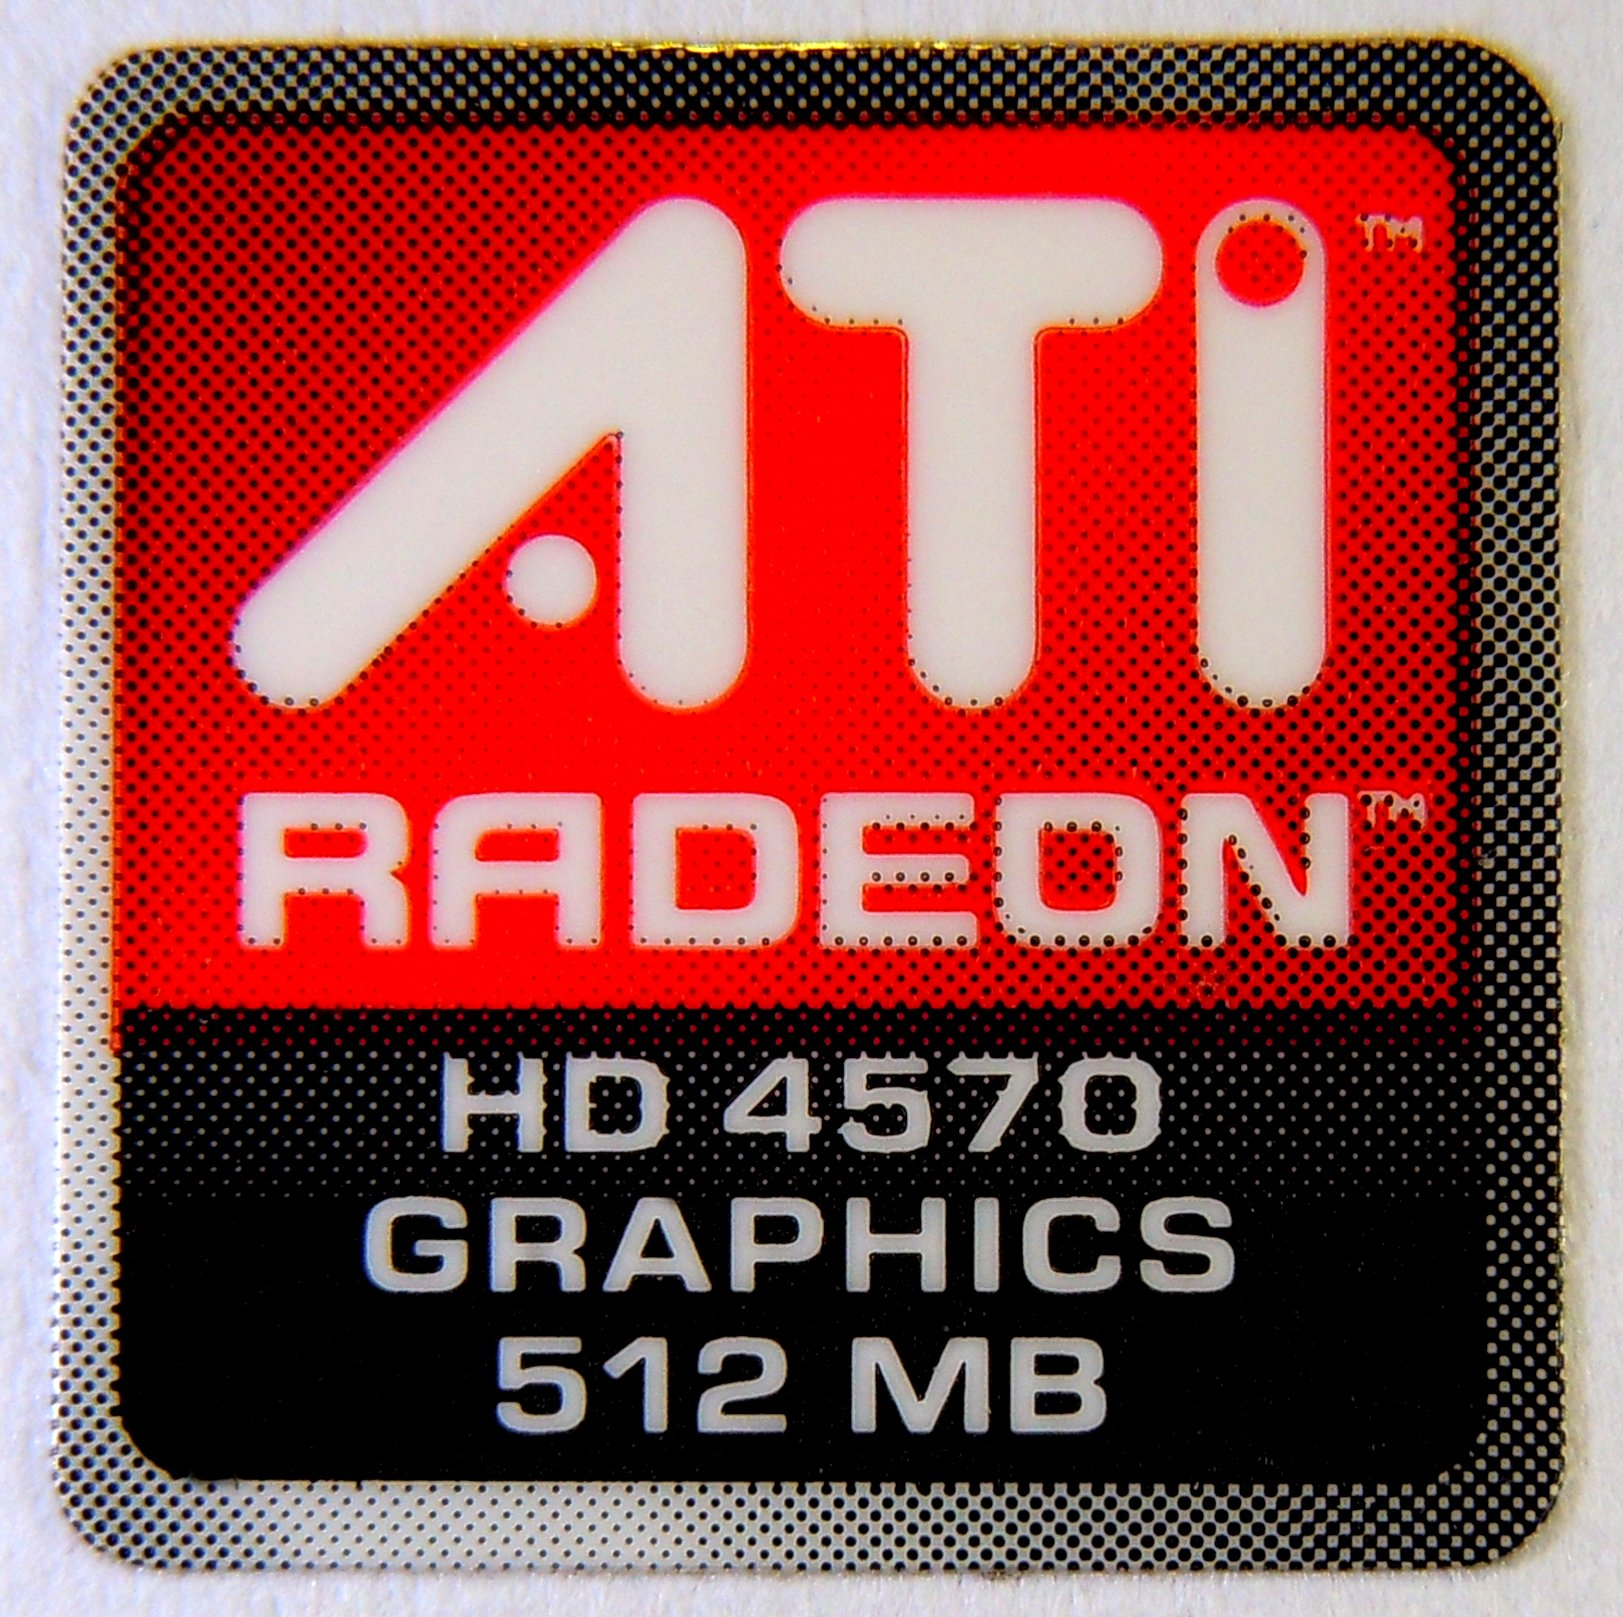 Original ATI Radeon HD4750 Graphics 512MB Sticker 16 x 16.5mm [280]